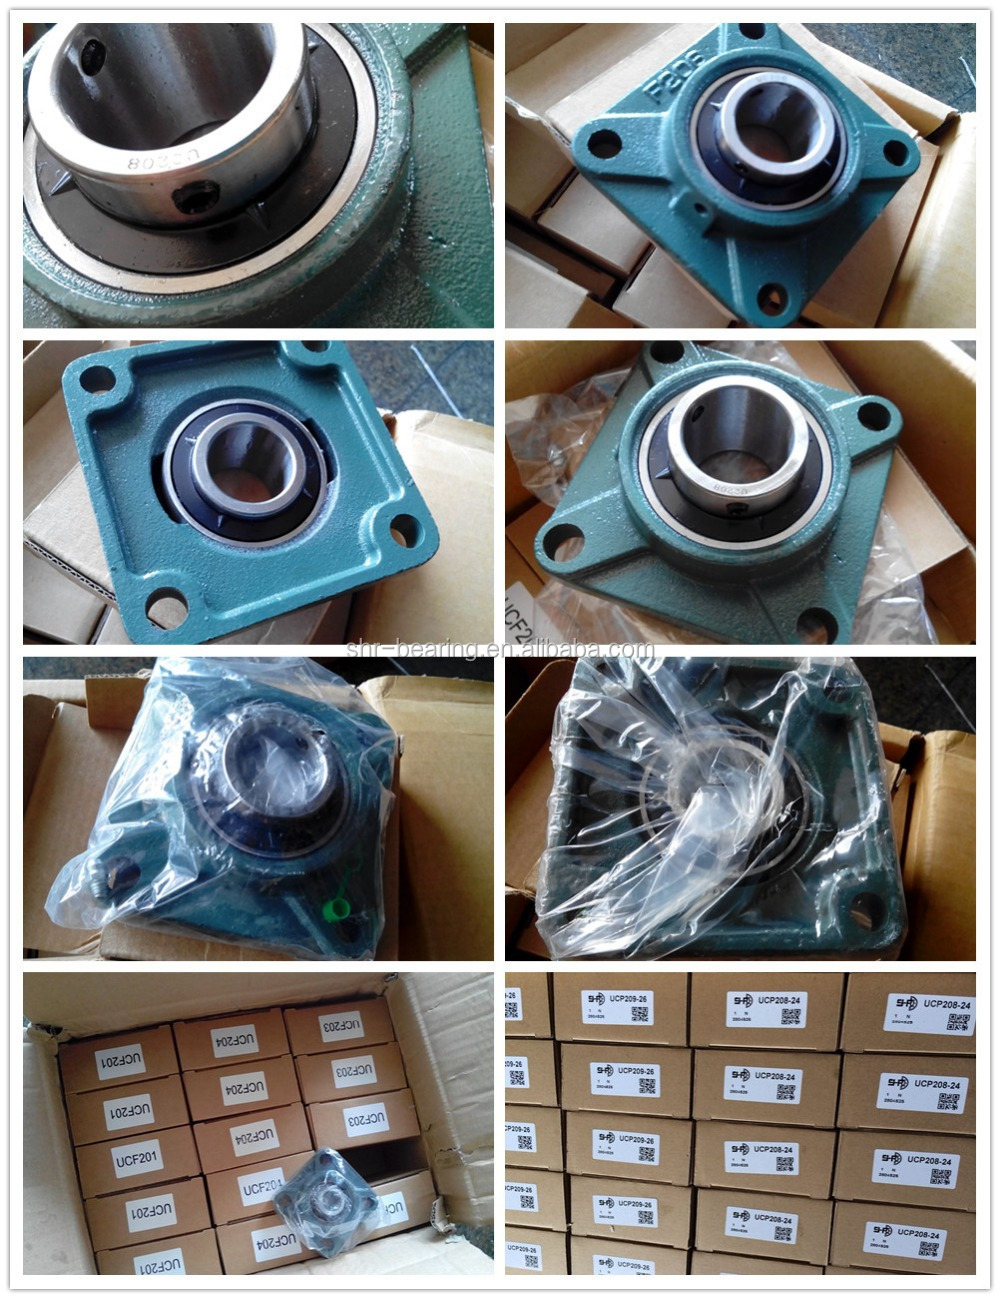 bearing flange self at wholesale pillow on for ucfl shop price dpbuvgqbscvu align com block crov oval p